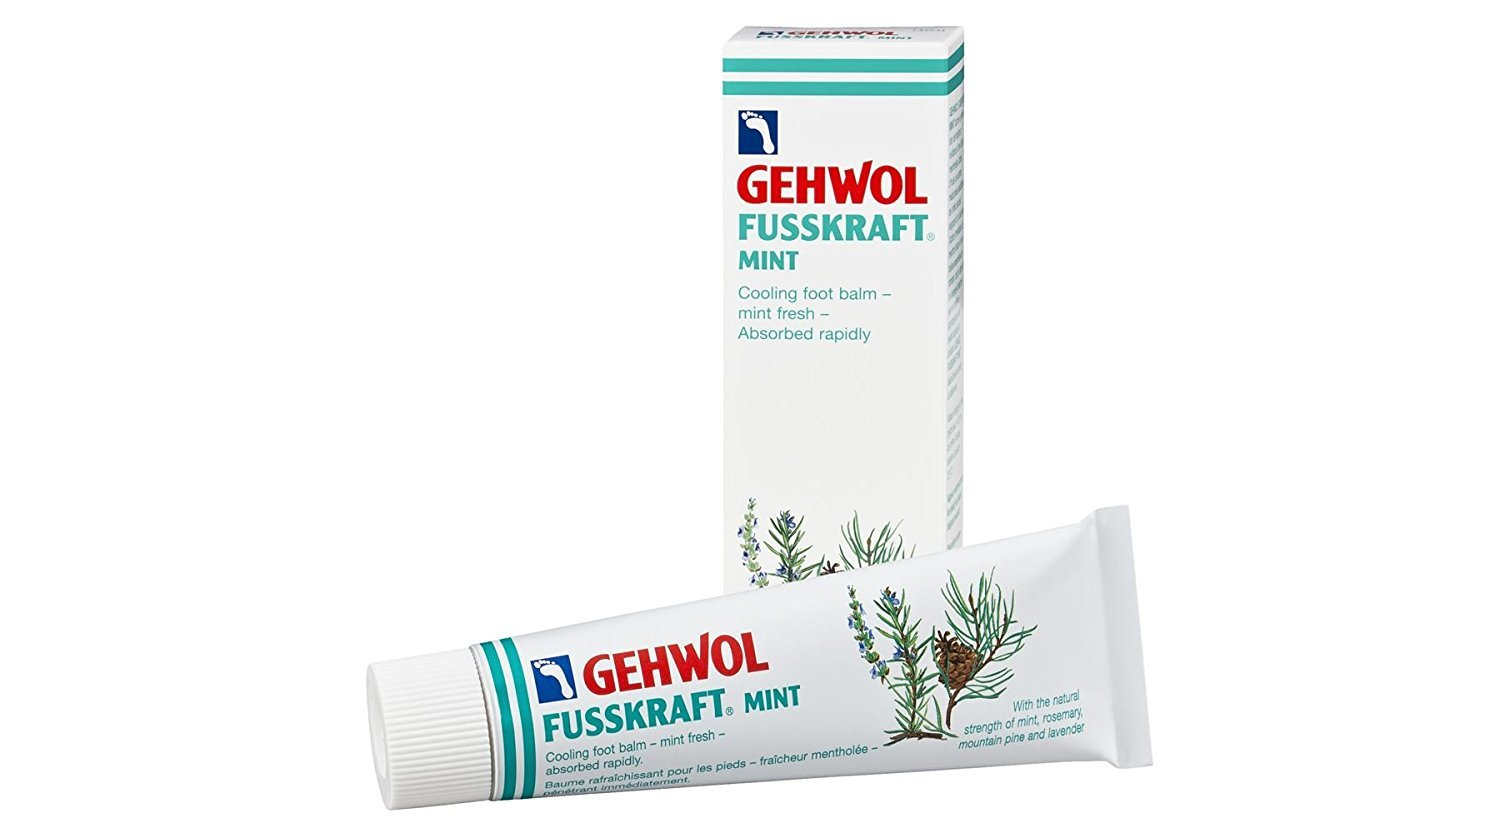 GEHWOL Fusskraft Mint 75ml Gewol